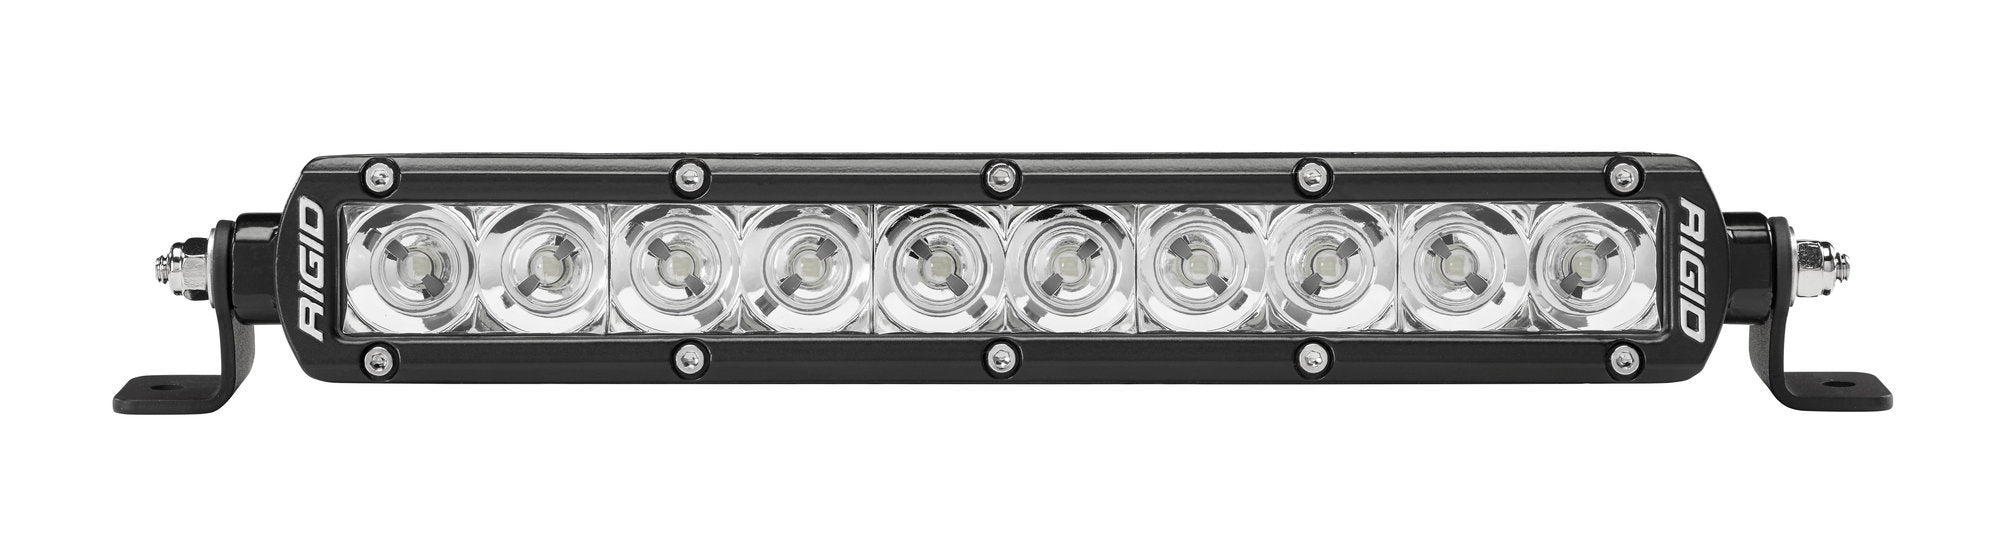 "Rigid Industries 10"" SR-Series LED Light Bar - Wreckless Motorsports"